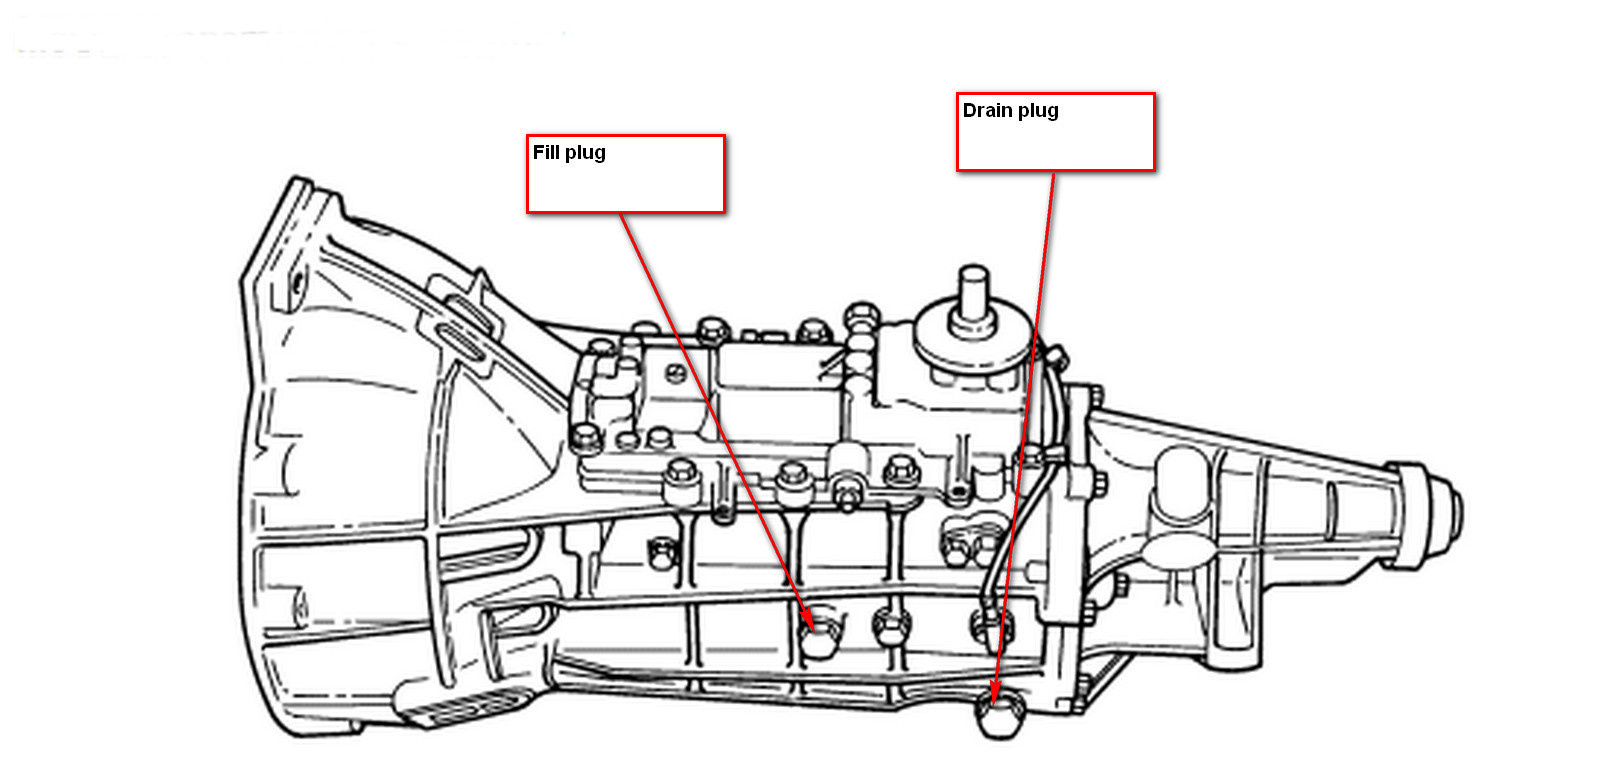 90 Ford 5 0 Engine Auto Transmission Diagram Wiring Library 1993 Explorer How Do You Fill Oil In 91 Ranger